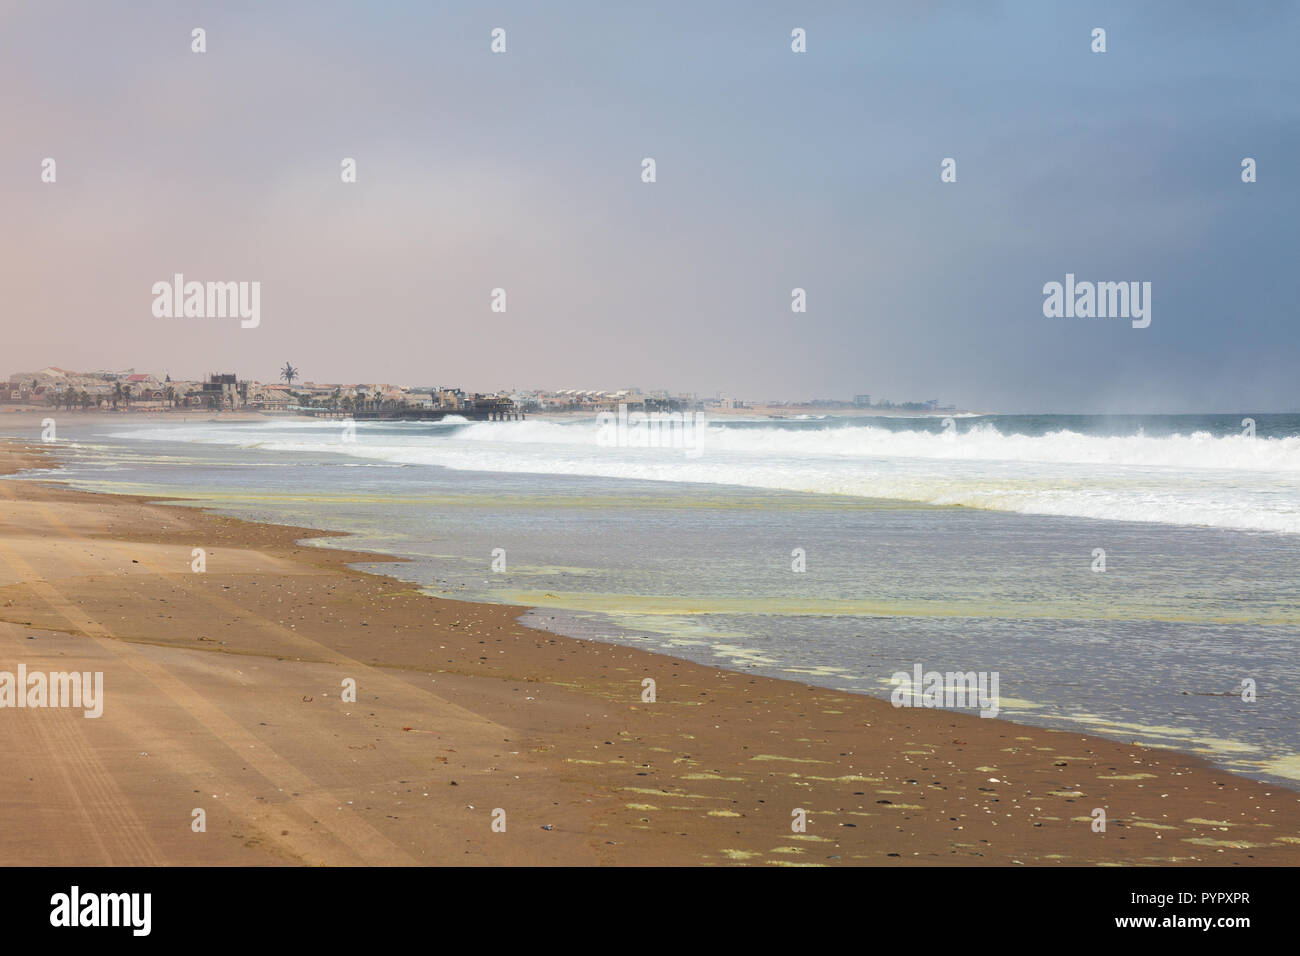 Namibia beach - the beach at Walvis Bay, Namibia Africa - Stock Image